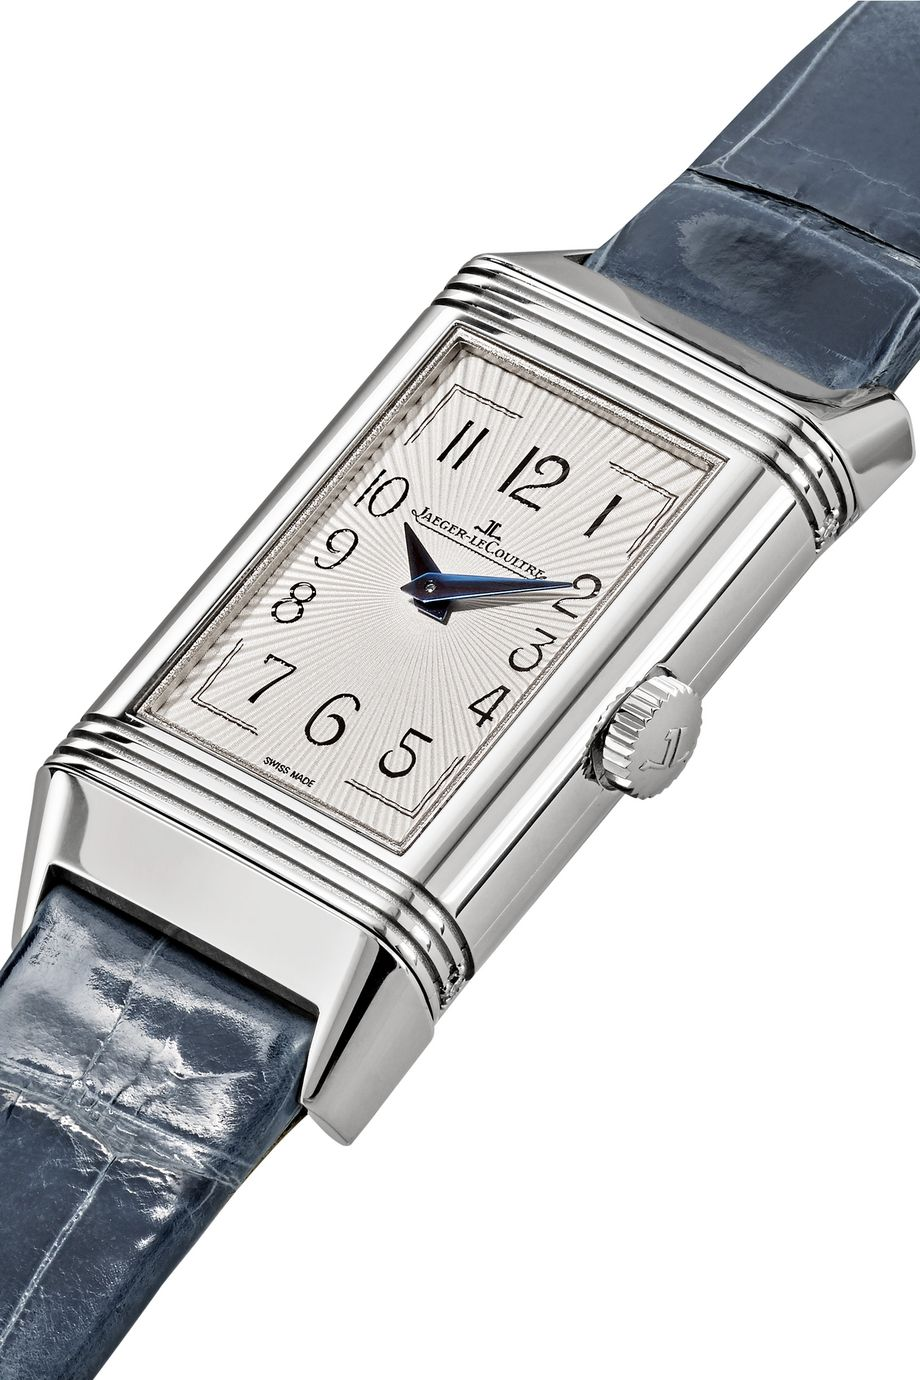 Jaeger-LeCoultre Reverso One Duetto Moon stainless steel, diamond and alligator watch